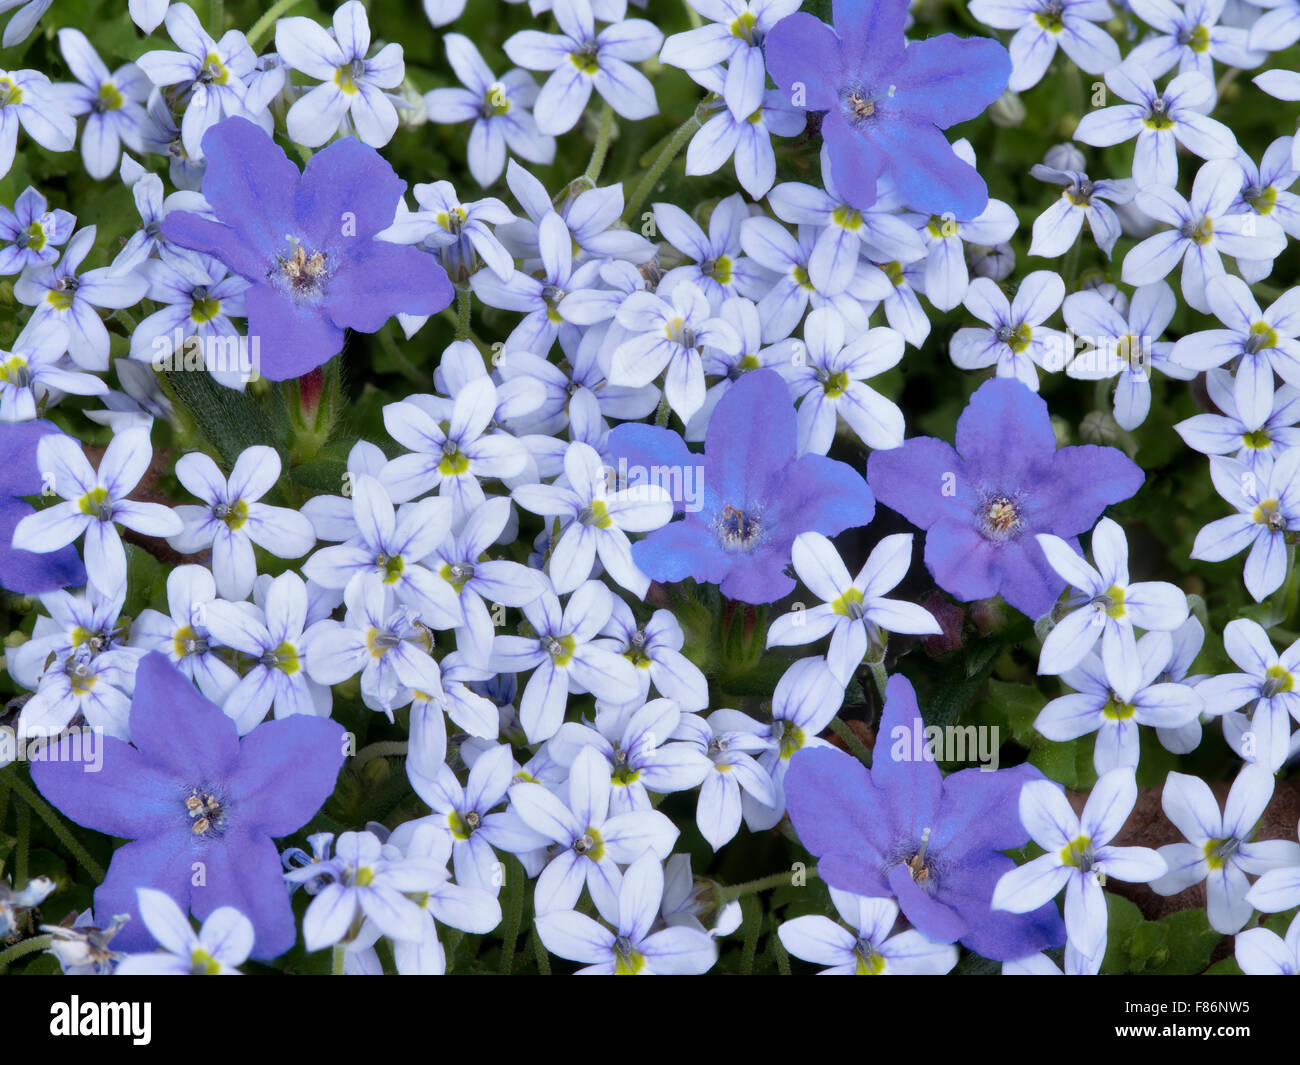 ground cover flower stock photos  ground cover flower stock, Beautiful flower